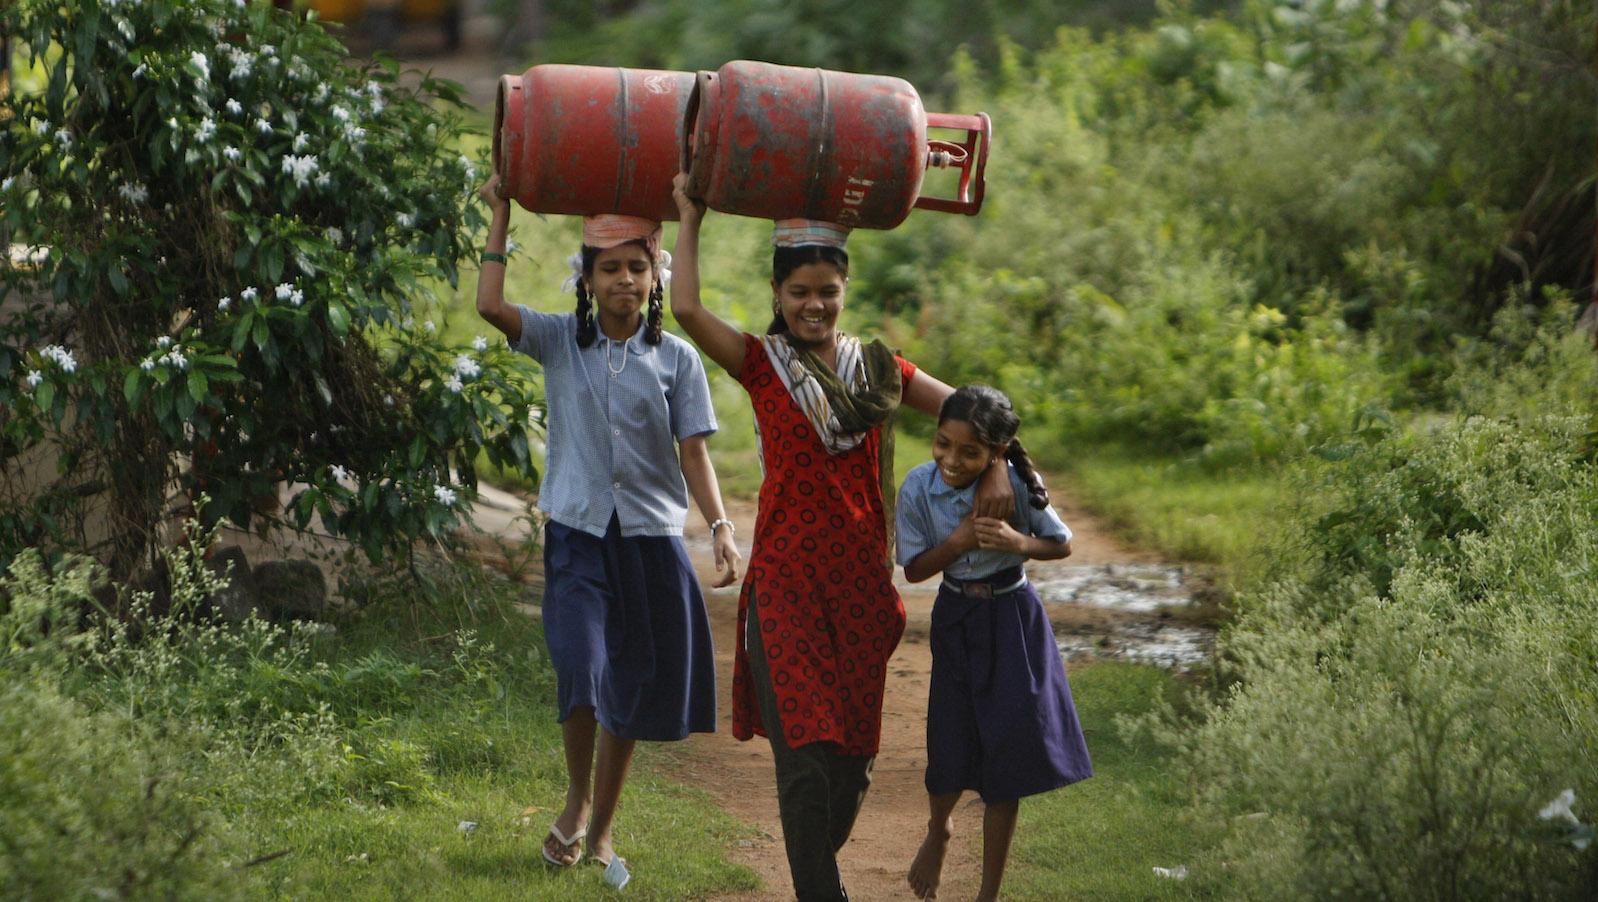 Indian girls share a light moment as they carry liquefied petroleum gas cylinders for cooking purposes in Hyderabad, India, Tuesday, Aug. 20, 2013. As part of its economic reform program, the Indian government last year announced a reduction in cooking gas subsidies. Currently each Indian household has been set a limit of nine subsidized refills a year.